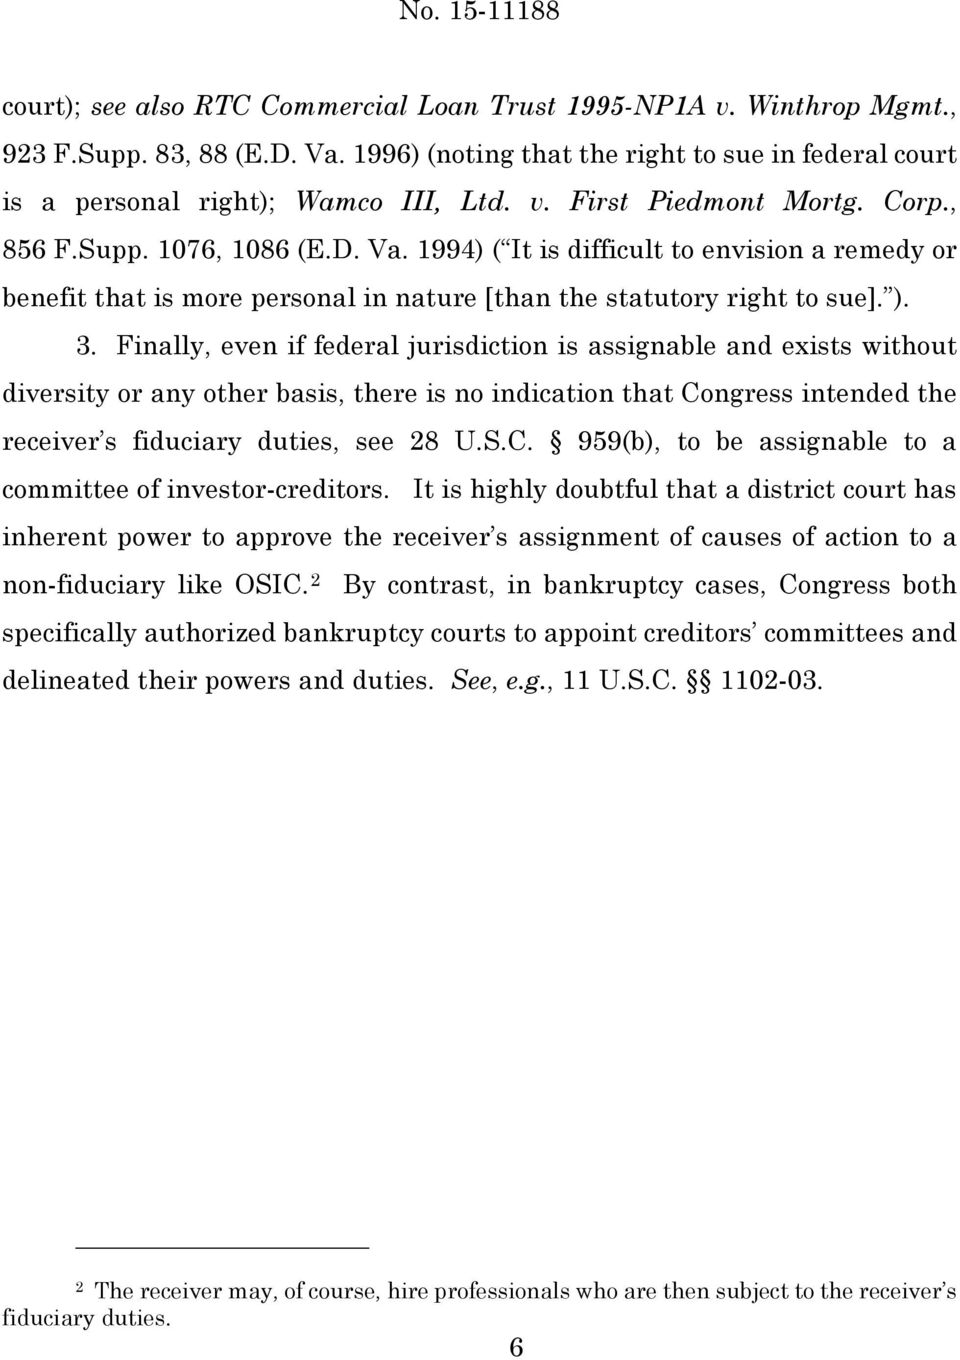 Finally, even if federal jurisdiction is assignable and exists without diversity or any other basis, there is no indication that Congress intended the receiver s fiduciary duties, see 28 U.S.C. 959(b), to be assignable to a committee of investor-creditors.